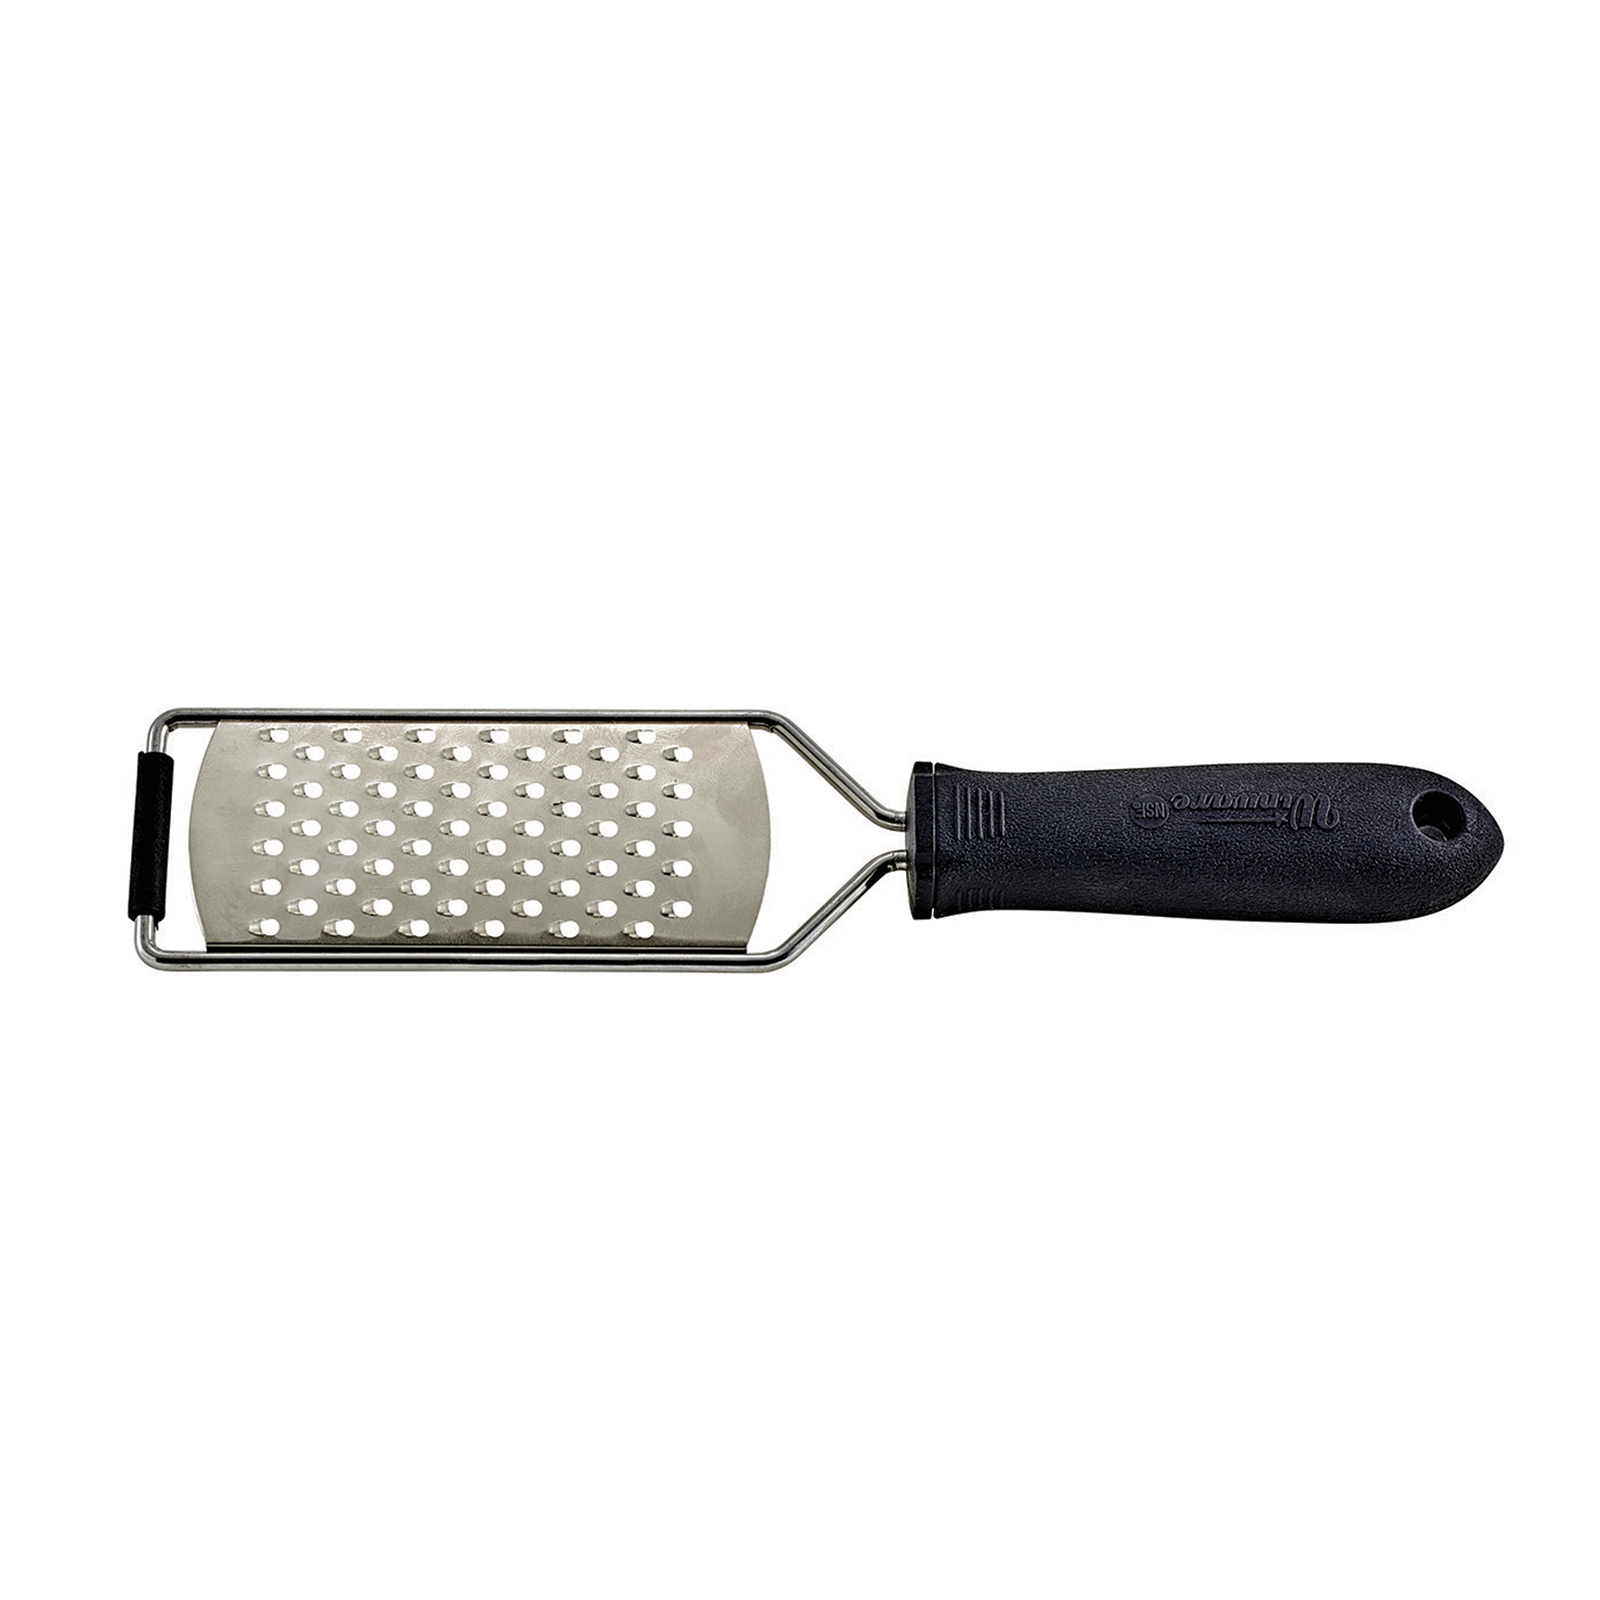 Winco VP-312 grater, manual